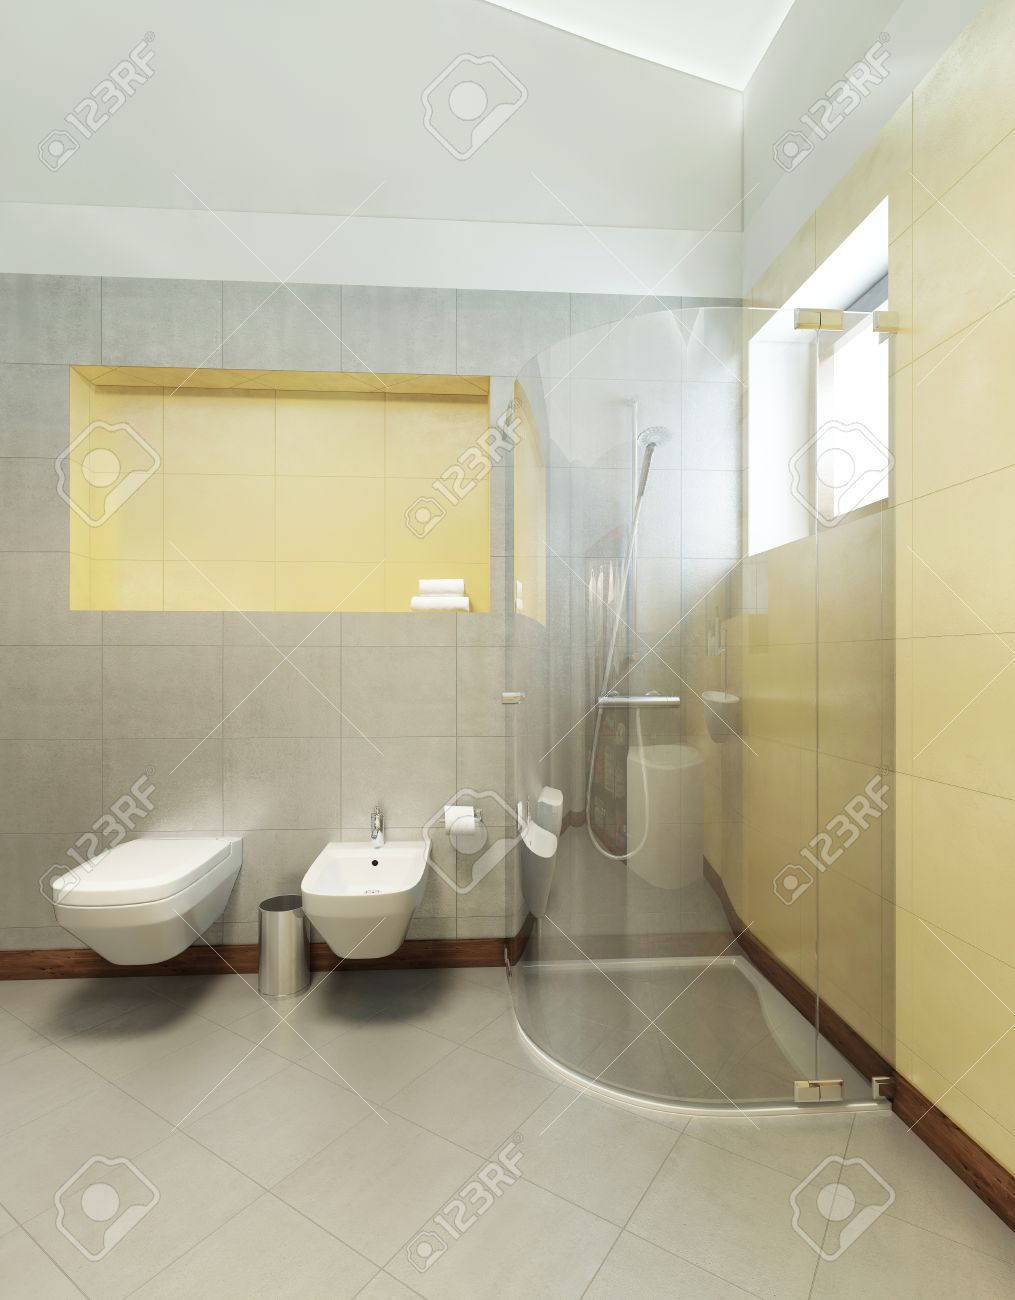 Delicieux Bathroom In Contemporary Style. Bathroom With Gray And Yellow Tiles On The  Walls Of A